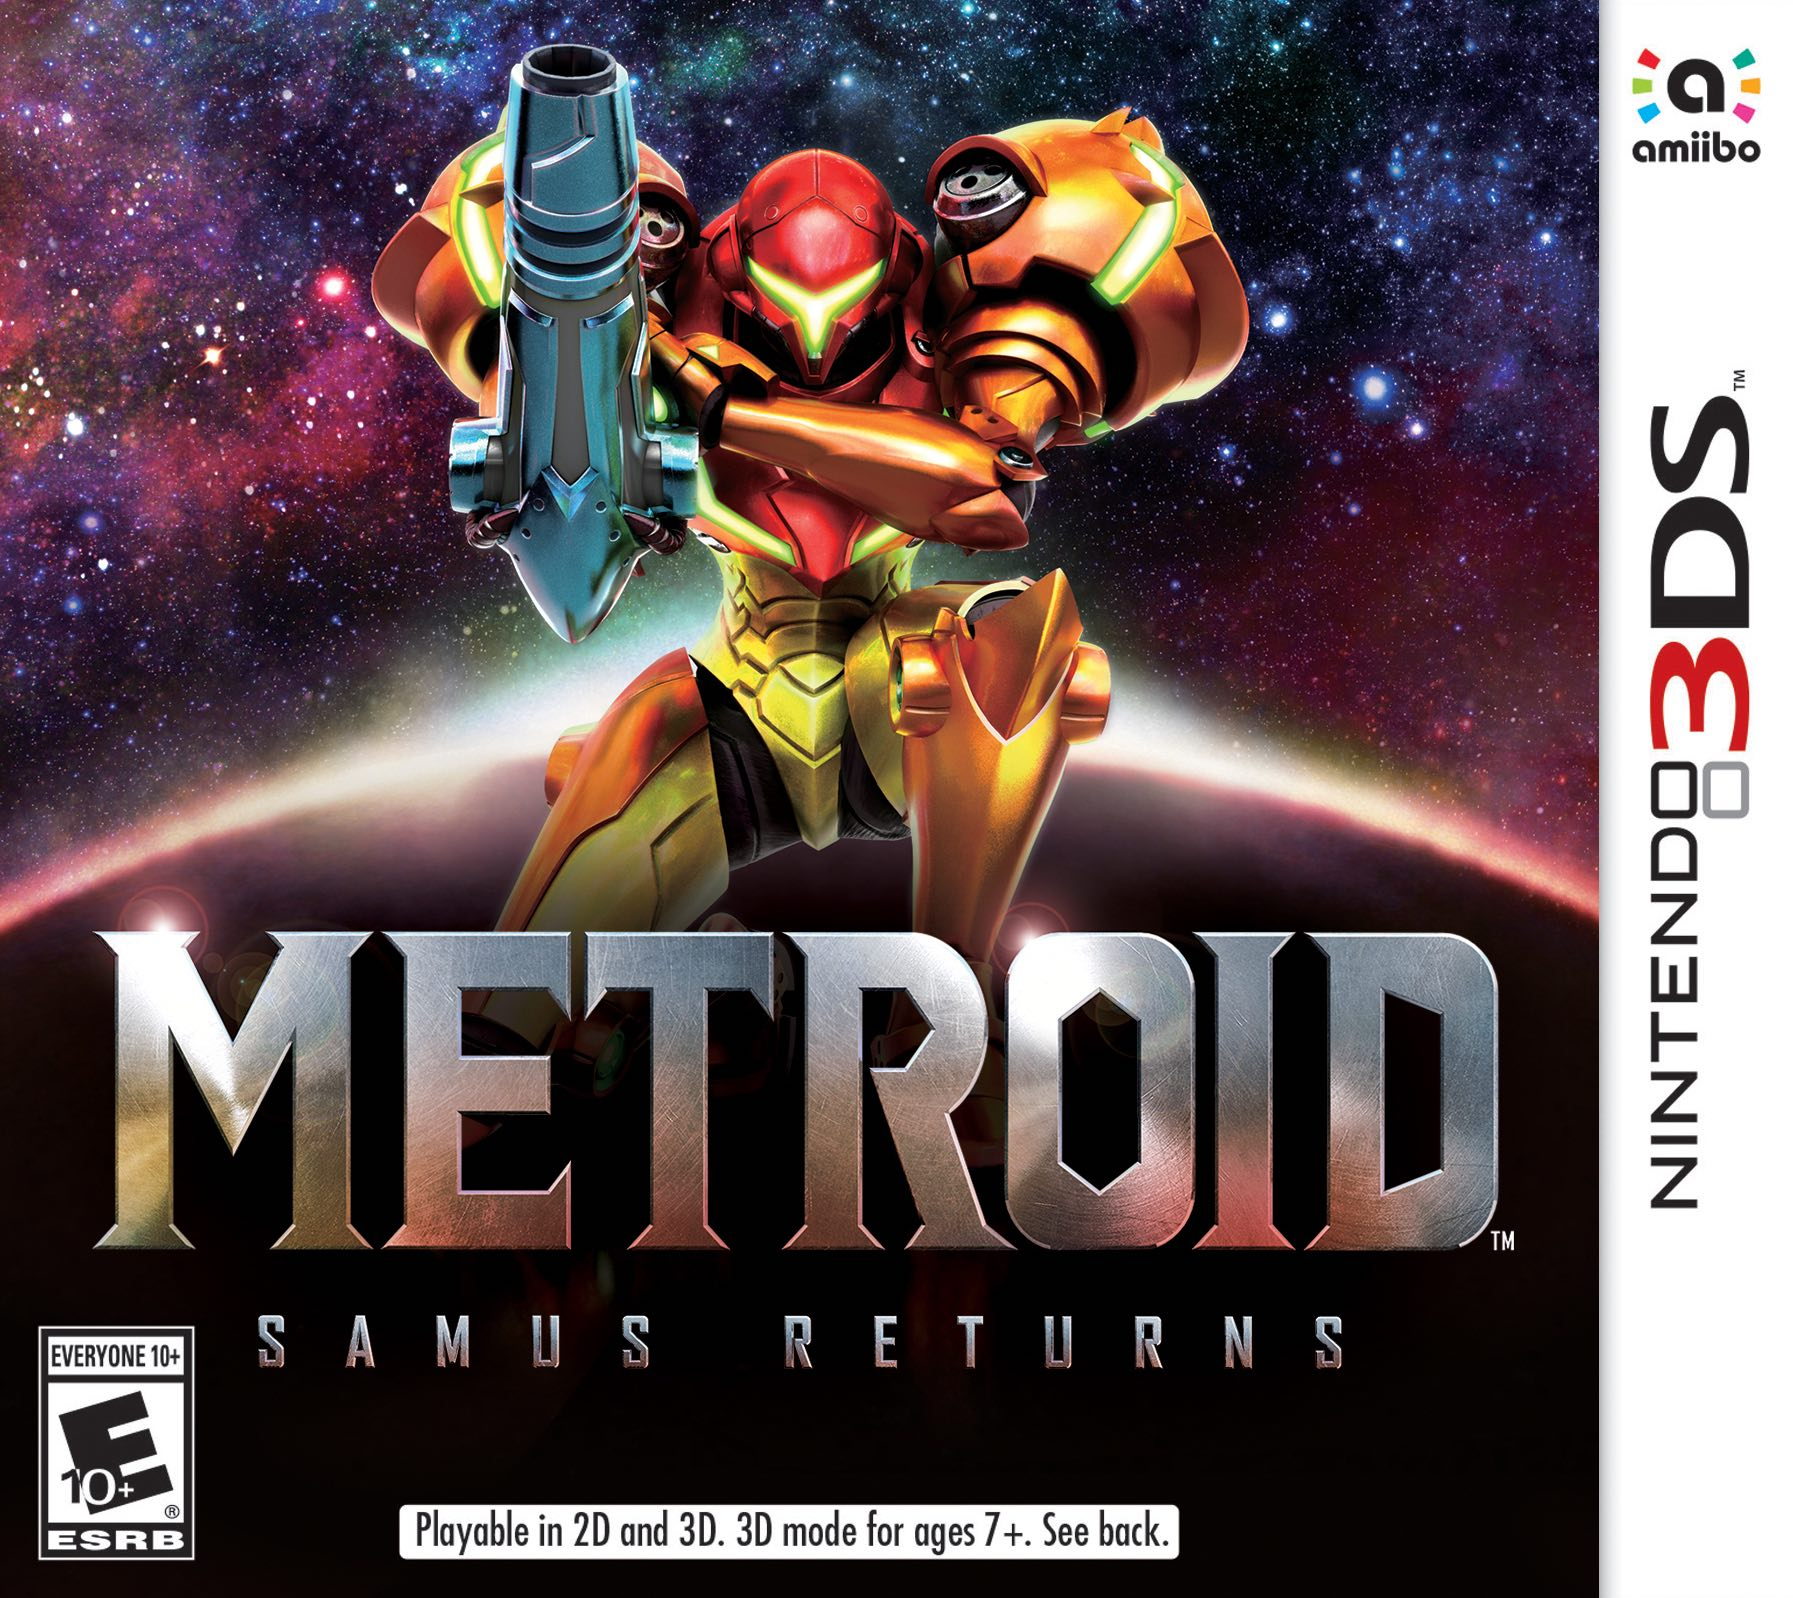 metroid-samus-returns-pack-shot